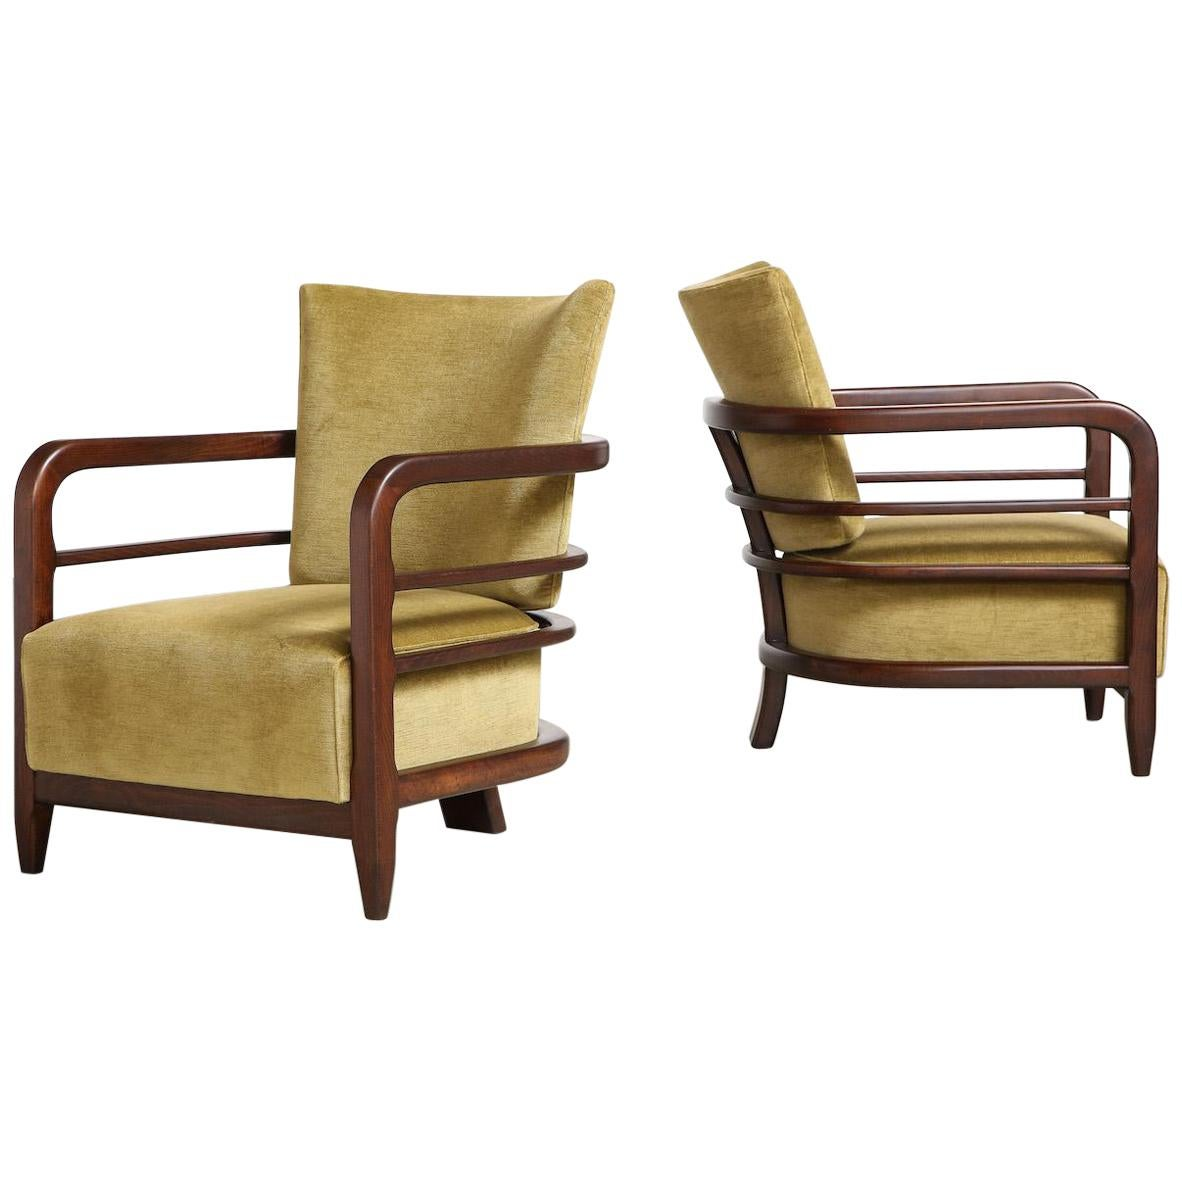 Pair of 3-Leg Lounge Chairs